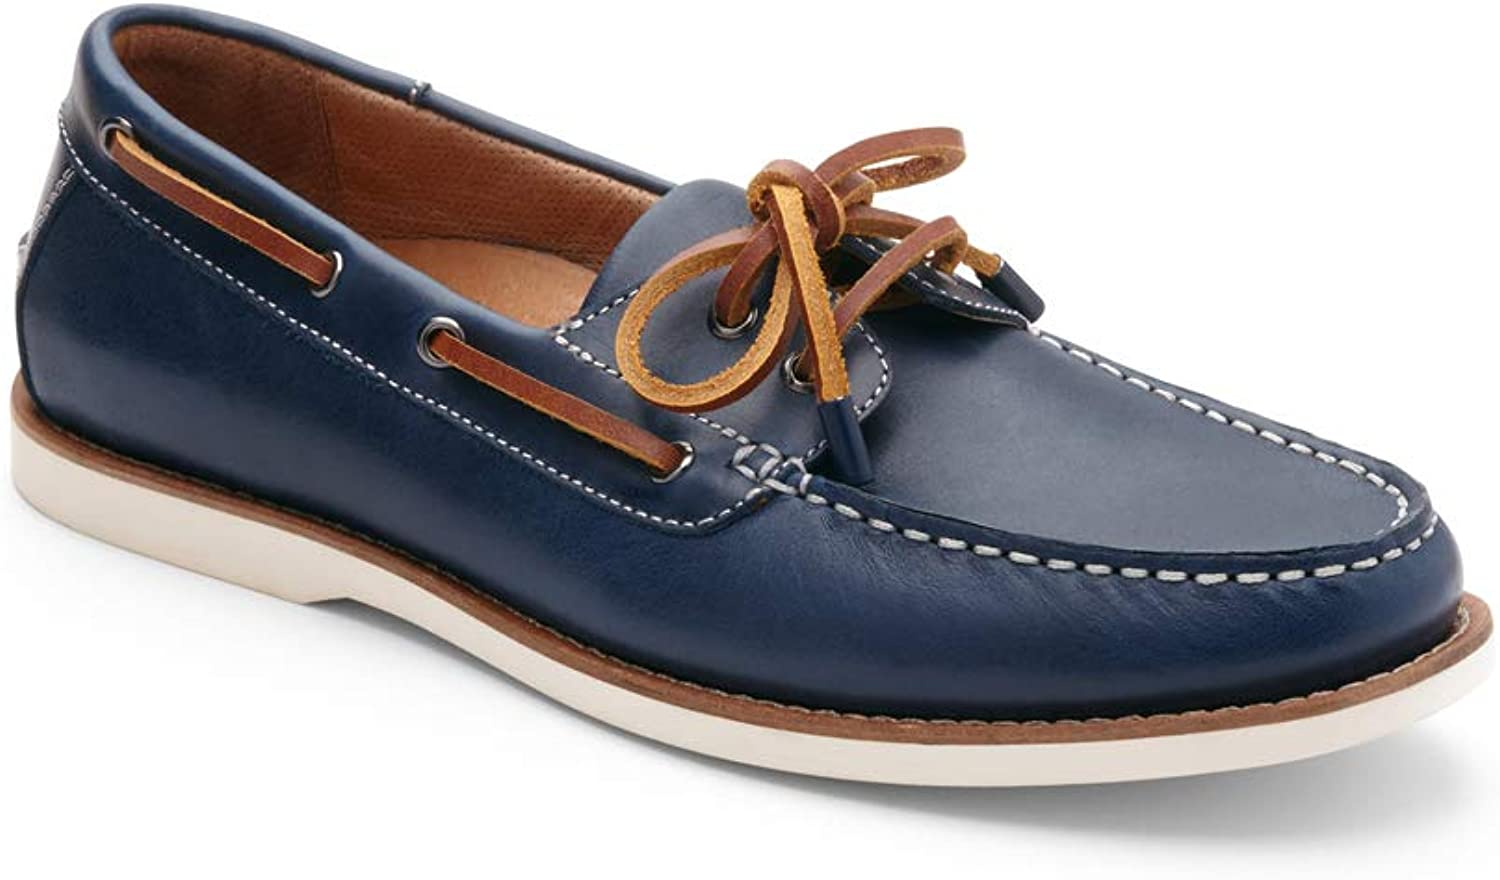 Vionic Men's Spring Lloyd Boat shoes - Slip-on with Concealed Orthotic Arch Support